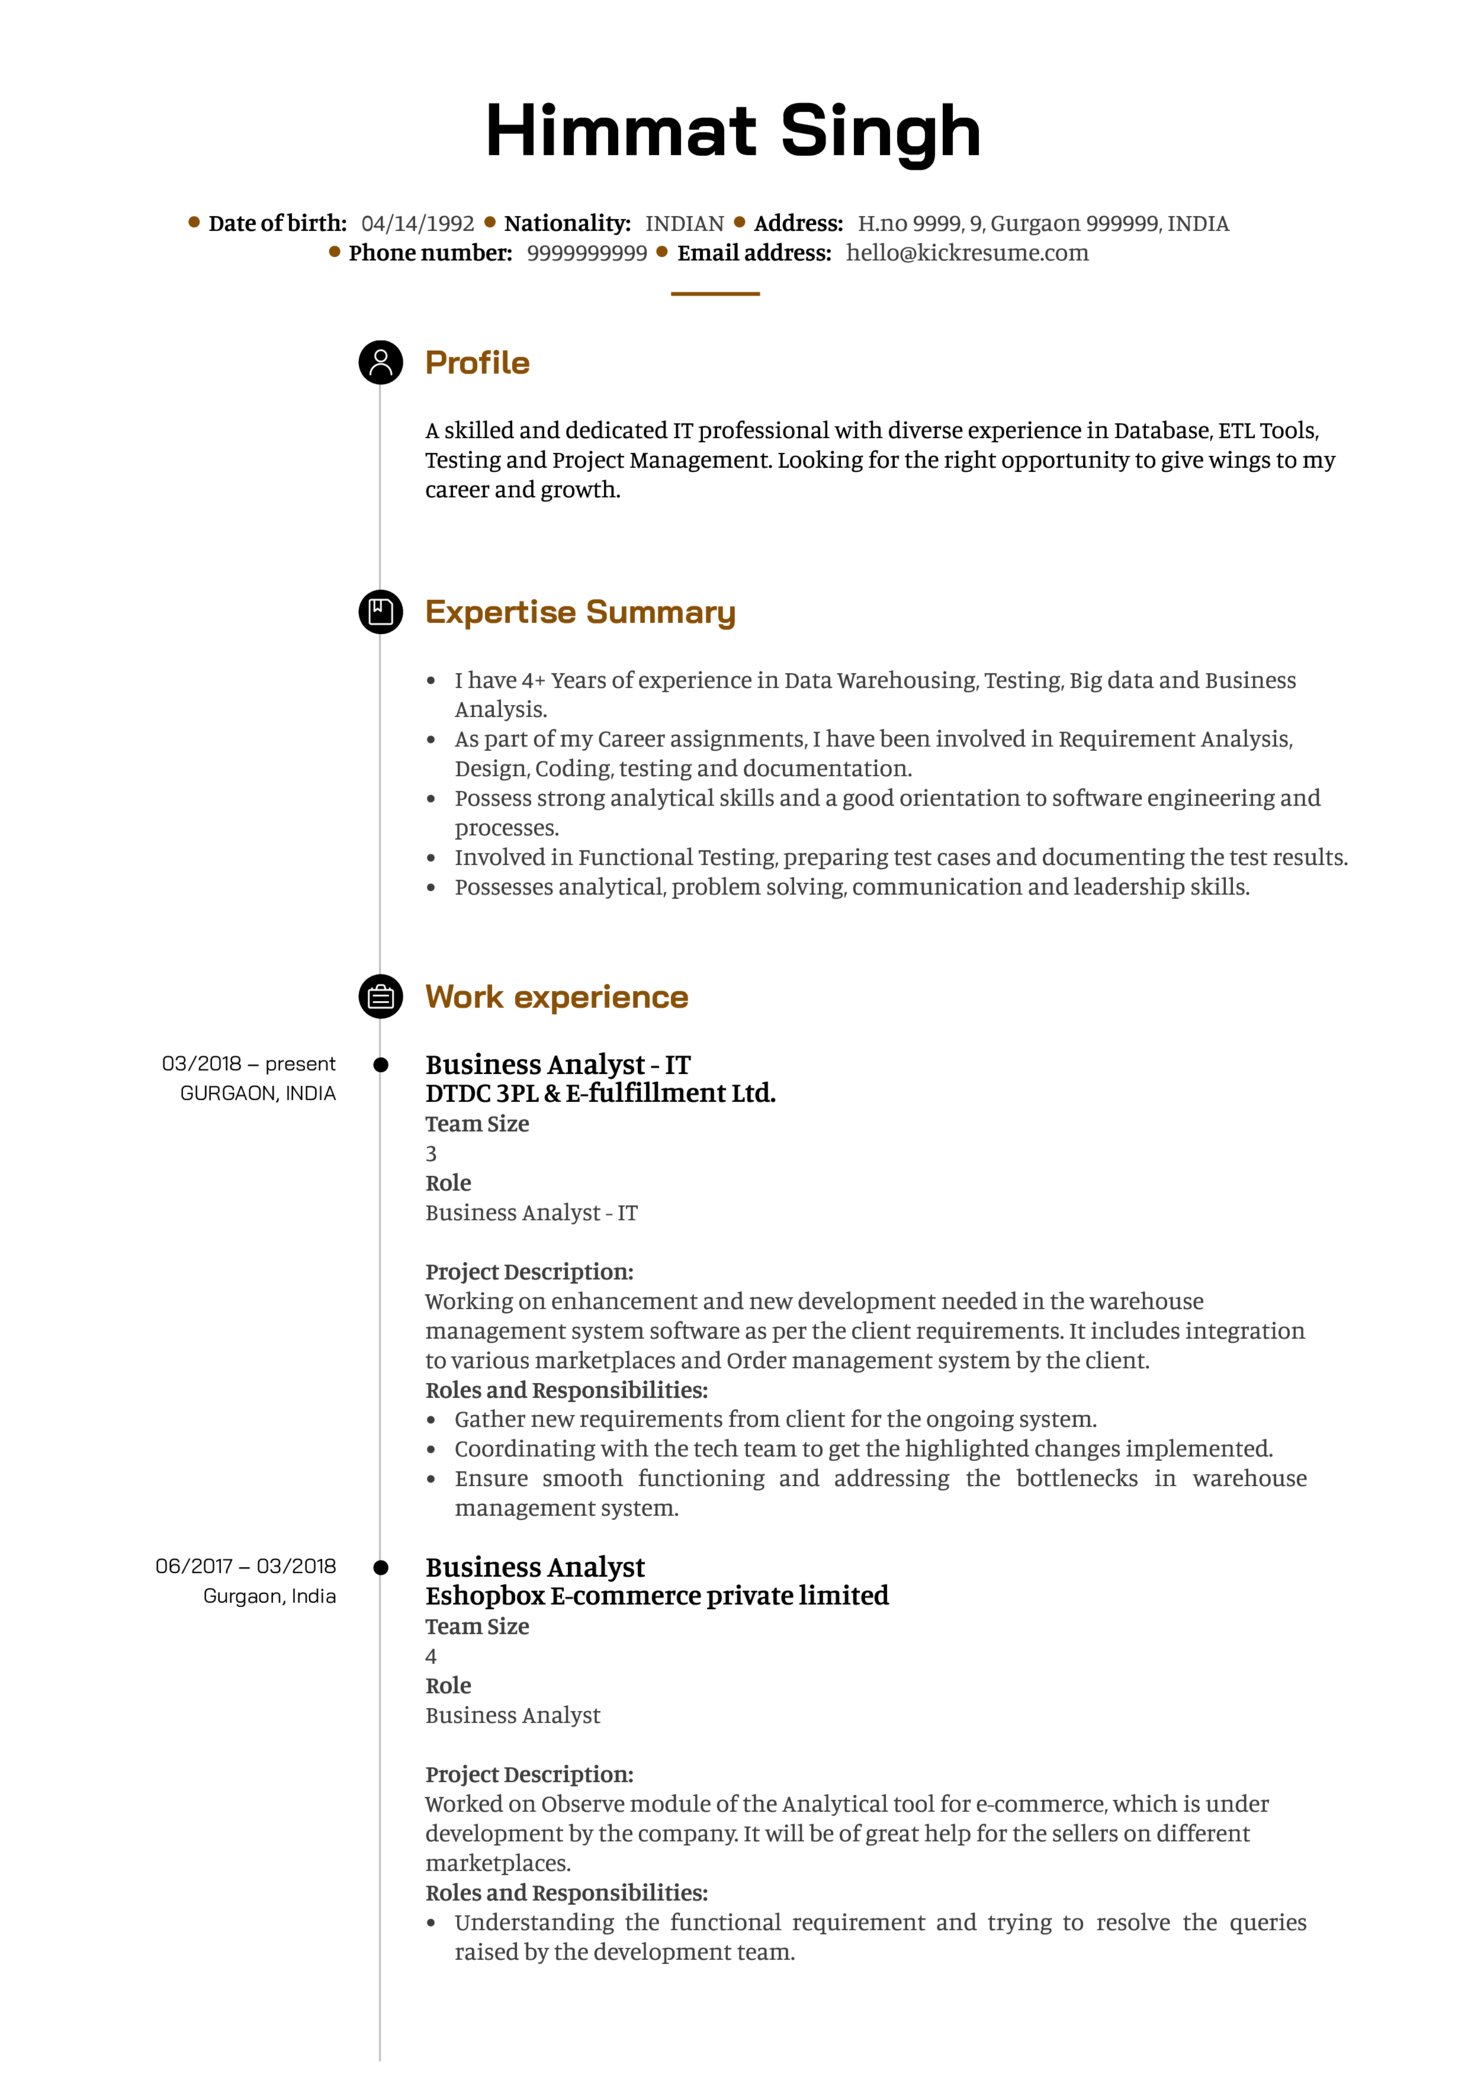 Resume examples by real people dtdc business analyst resume dtdc business analyst resume template friedricerecipe